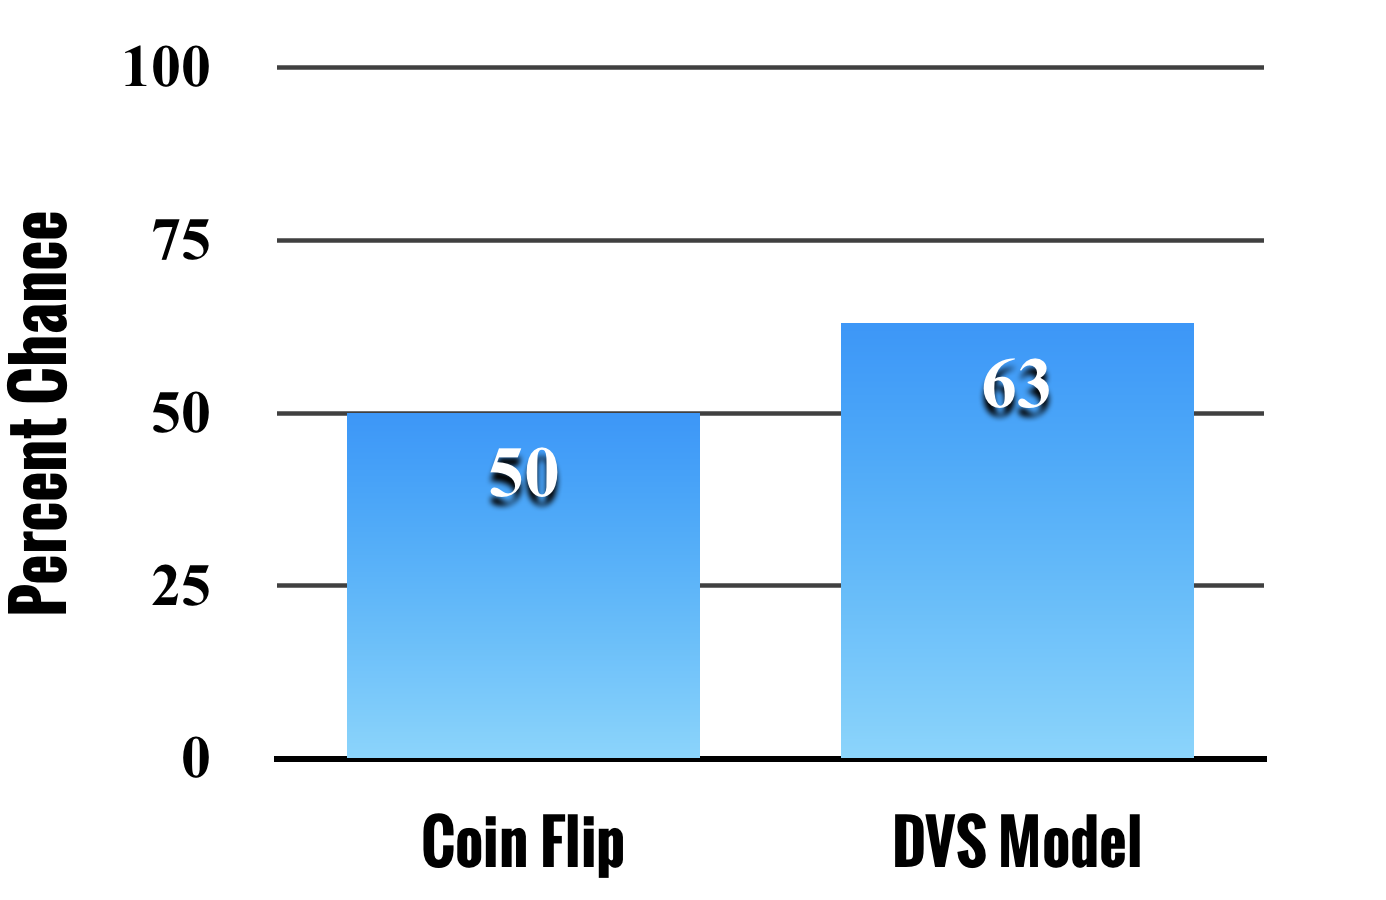 Concordance - The Concordance yields a measure of predictive performance for making decisions between pairs of pitchers. The Concordance for the DVS Model is 63%, which means that when comparing two pitchers the DVS Model is able to accurately predict the pitcher who will undergo a major throwing-related injury first 63% of the time. This is approximately 2-to-1 odds of making the right decision between two pitchers.